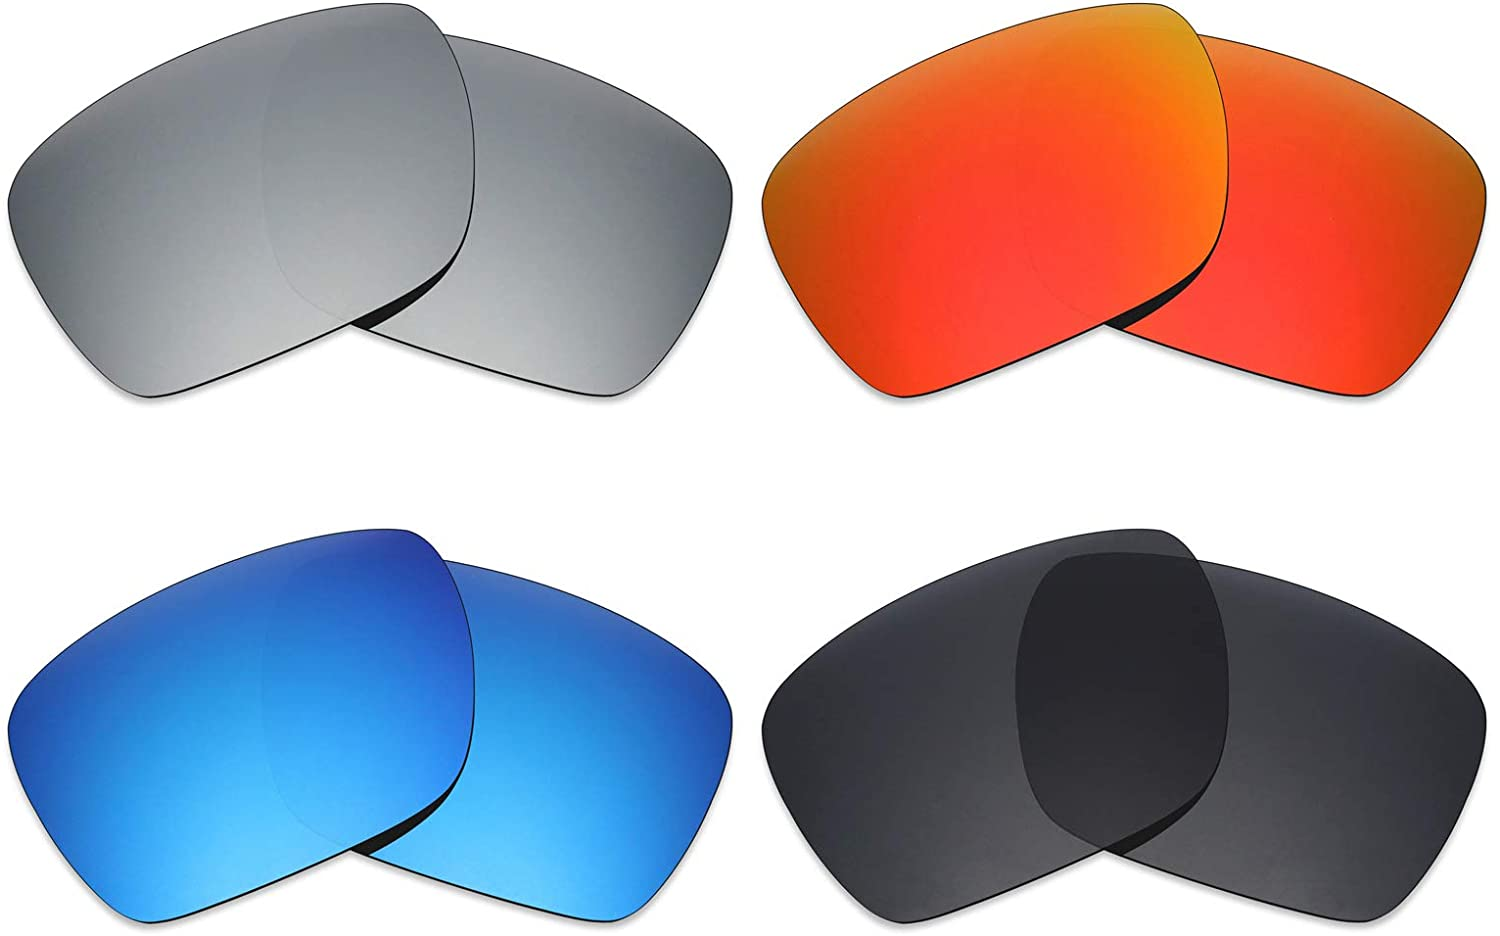 Mryok 4 Pair Polarized Replacement Lenses for Oakley Dispatch 1 Sunglass - Stealth Black/Fire Red/Ice Blue/Silver Titanium